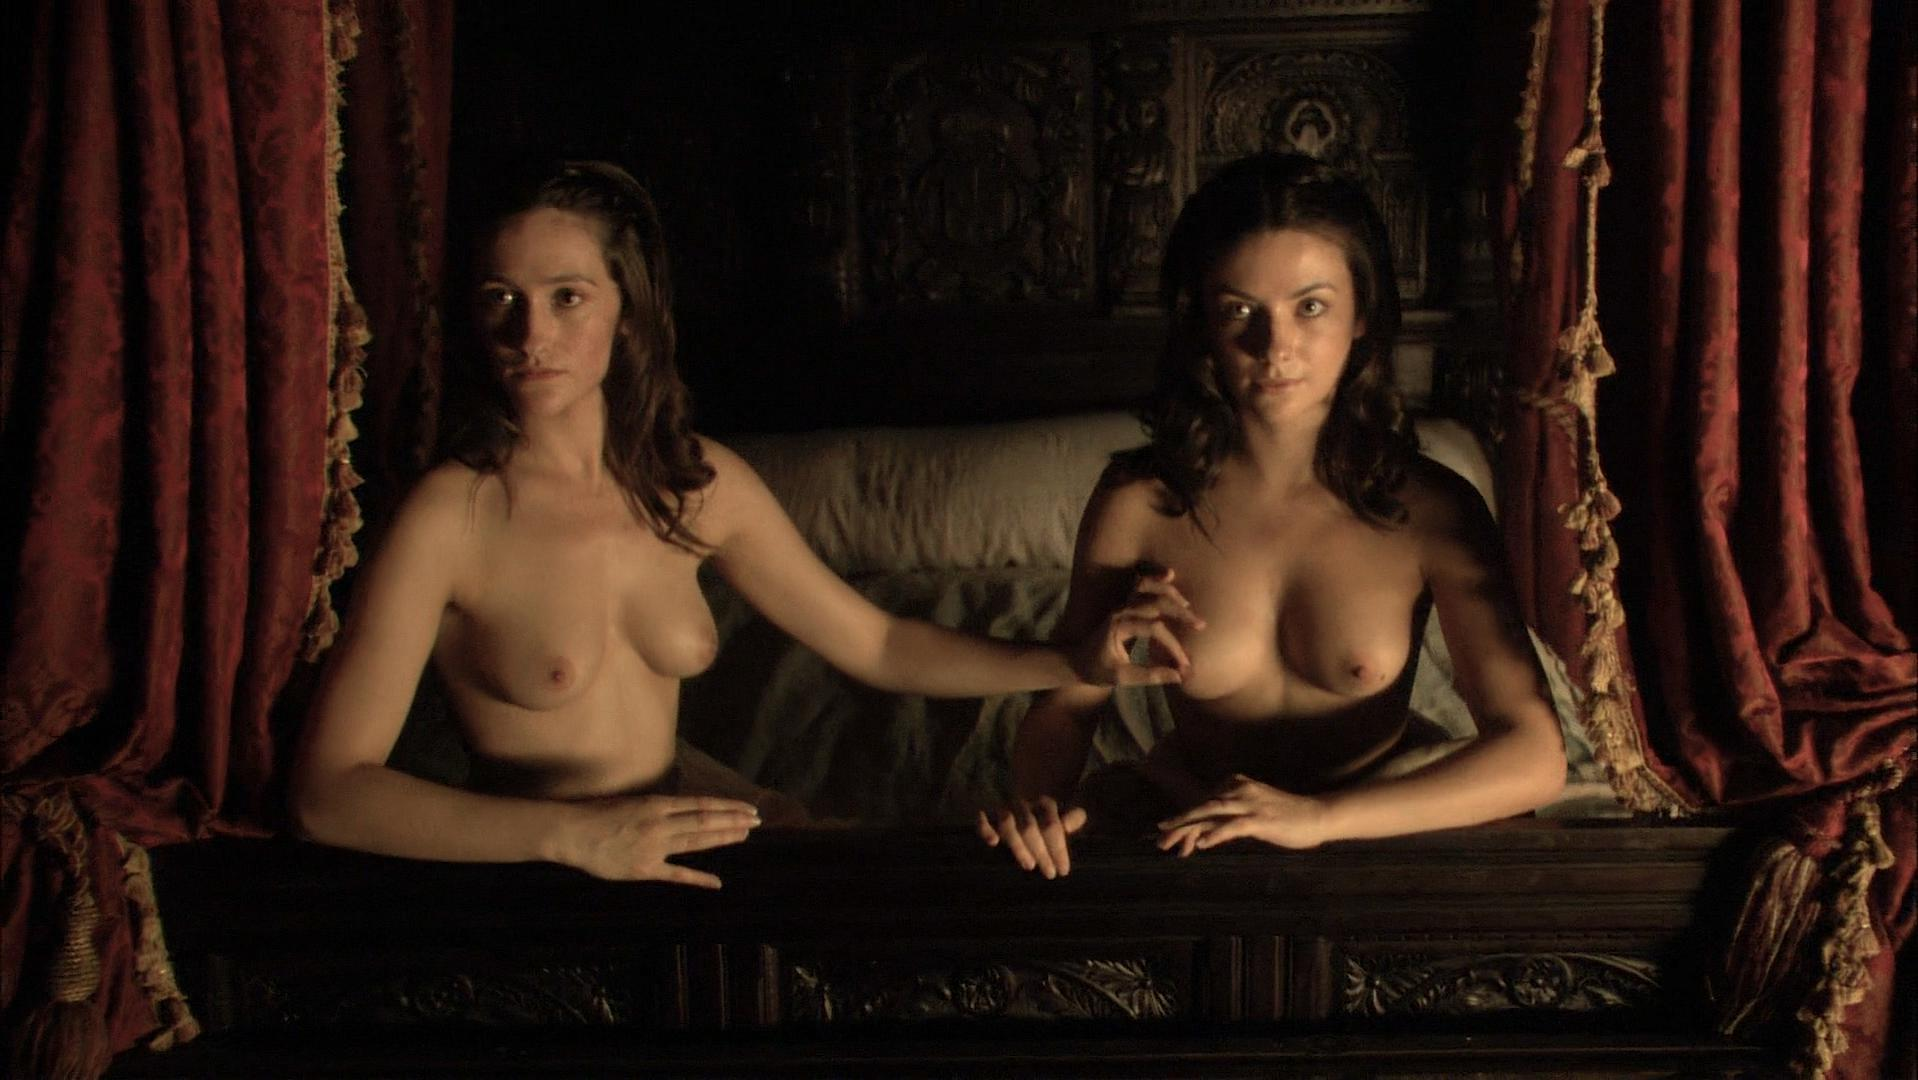 Hot Sex Rachel Montague The Tudors